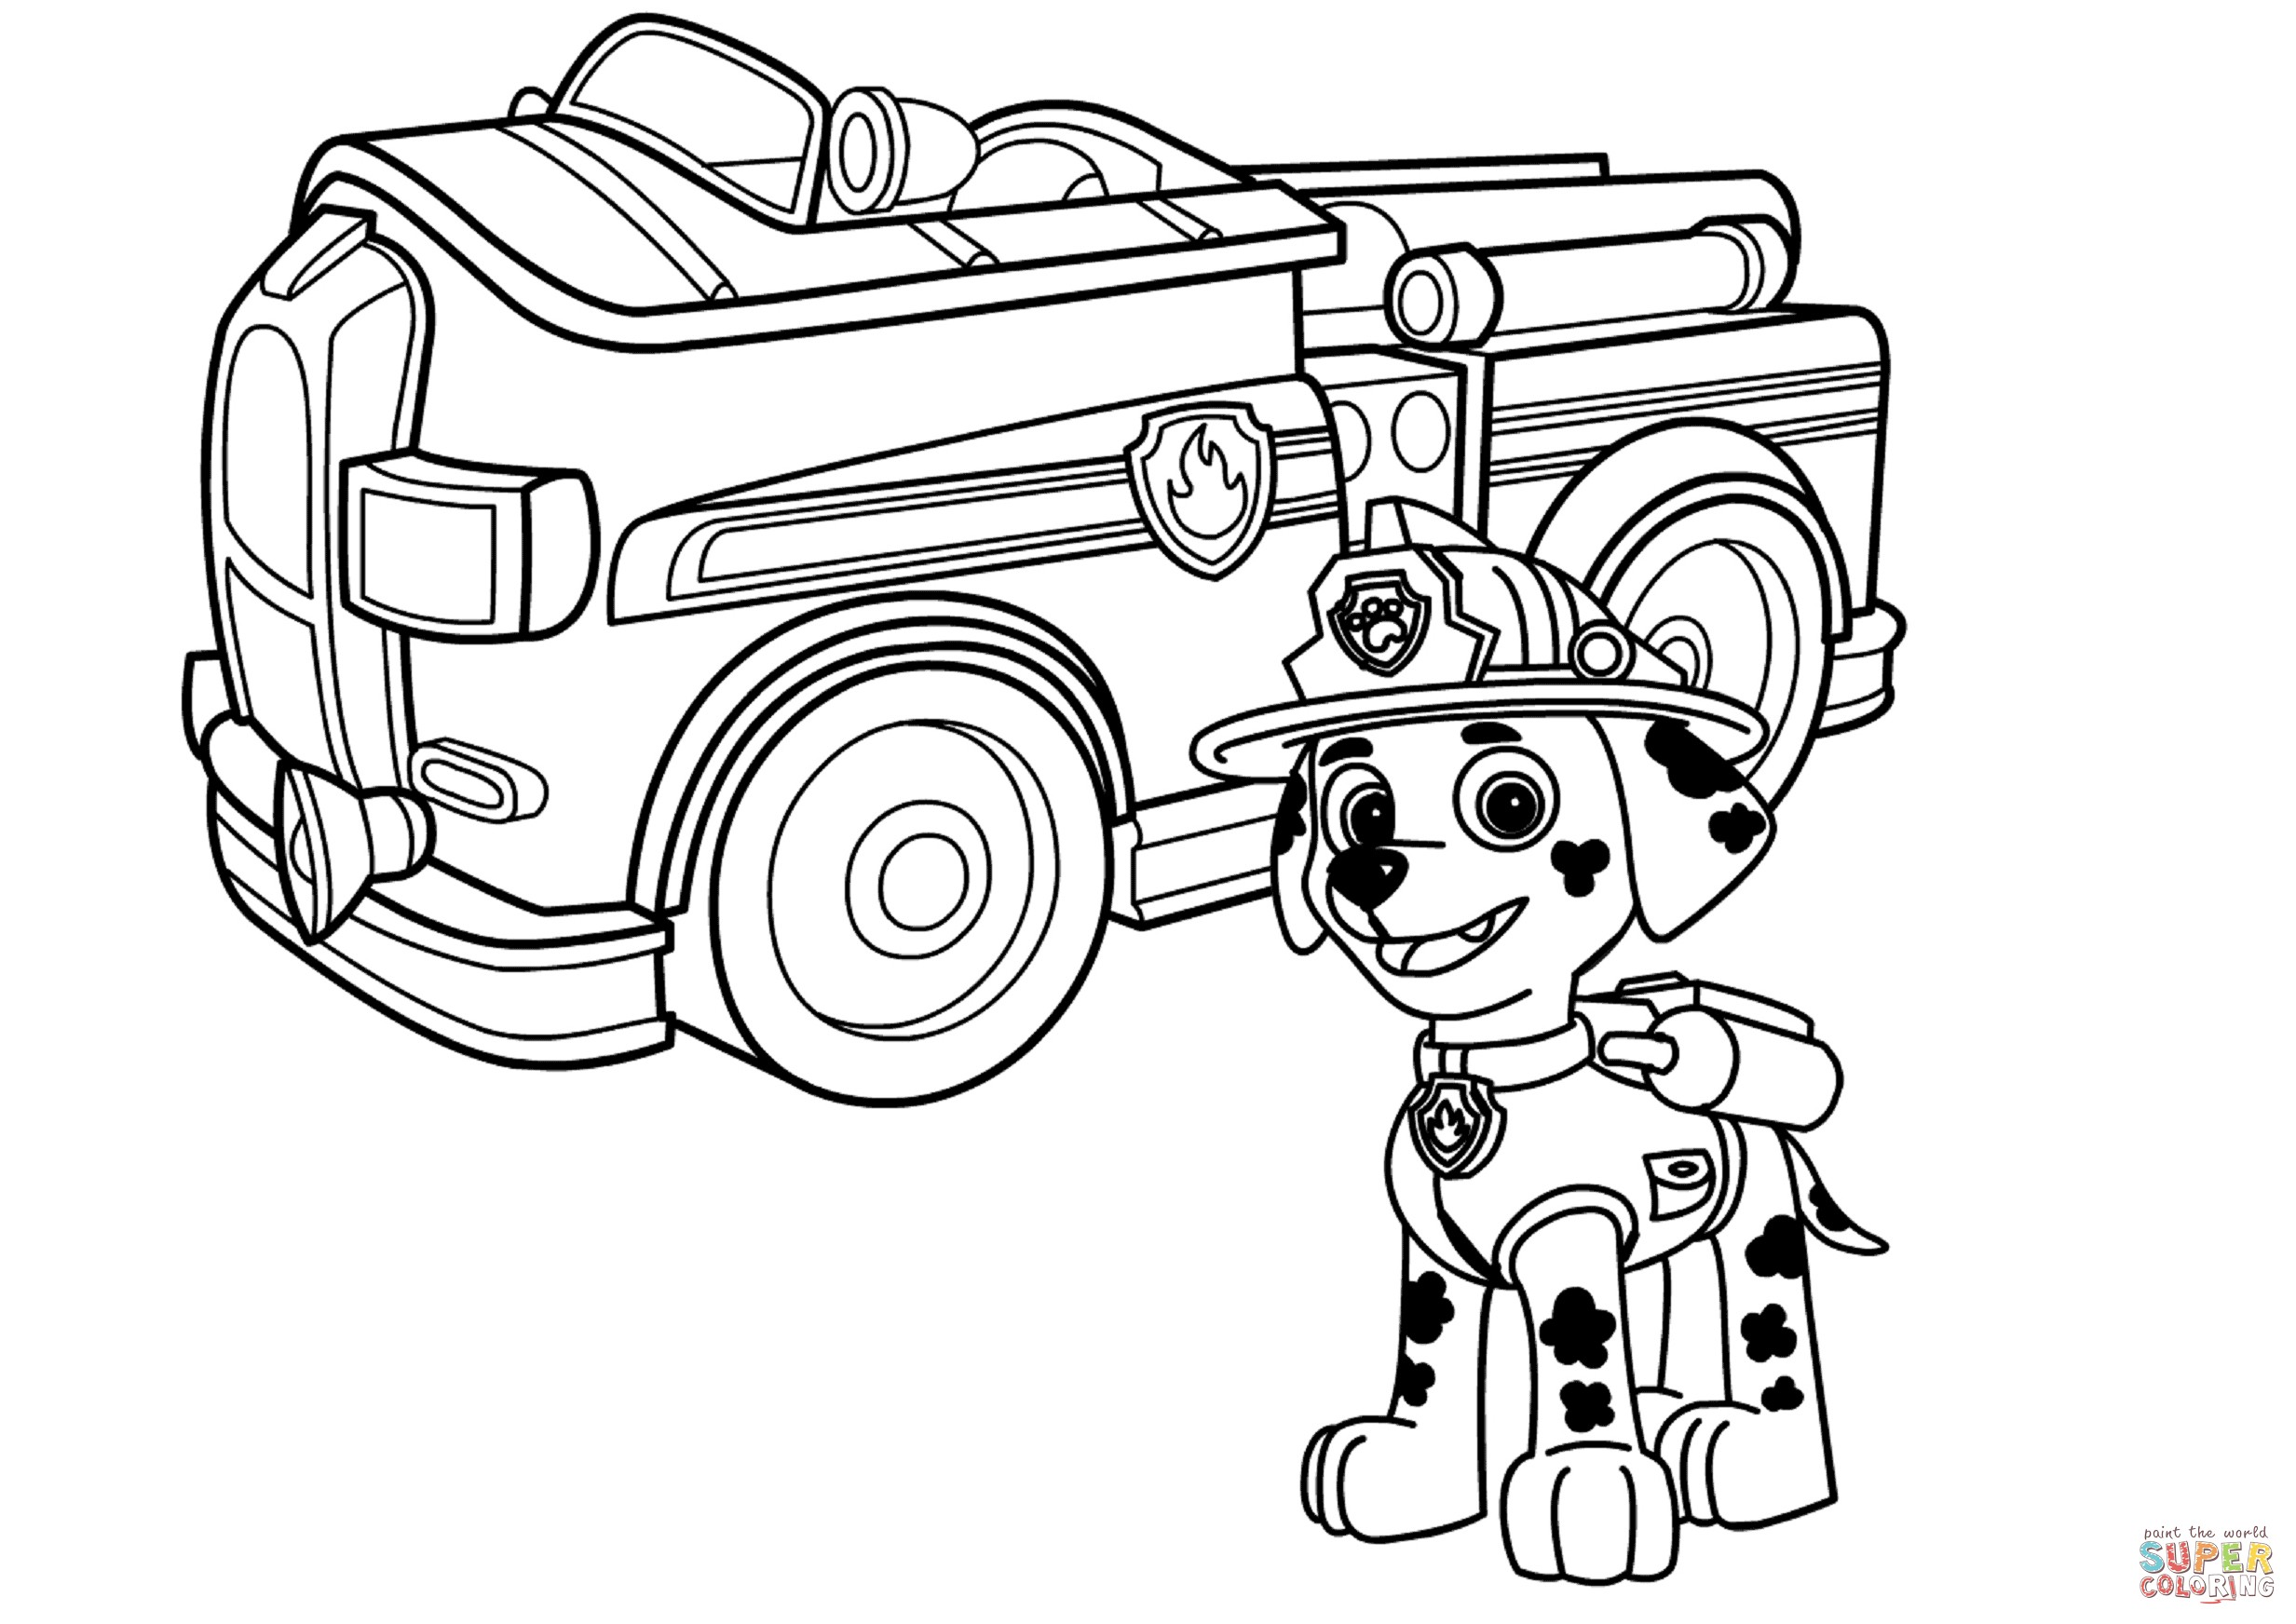 2465x1744 Lego Firetruck With Fireman Coloring Page For Kids Best